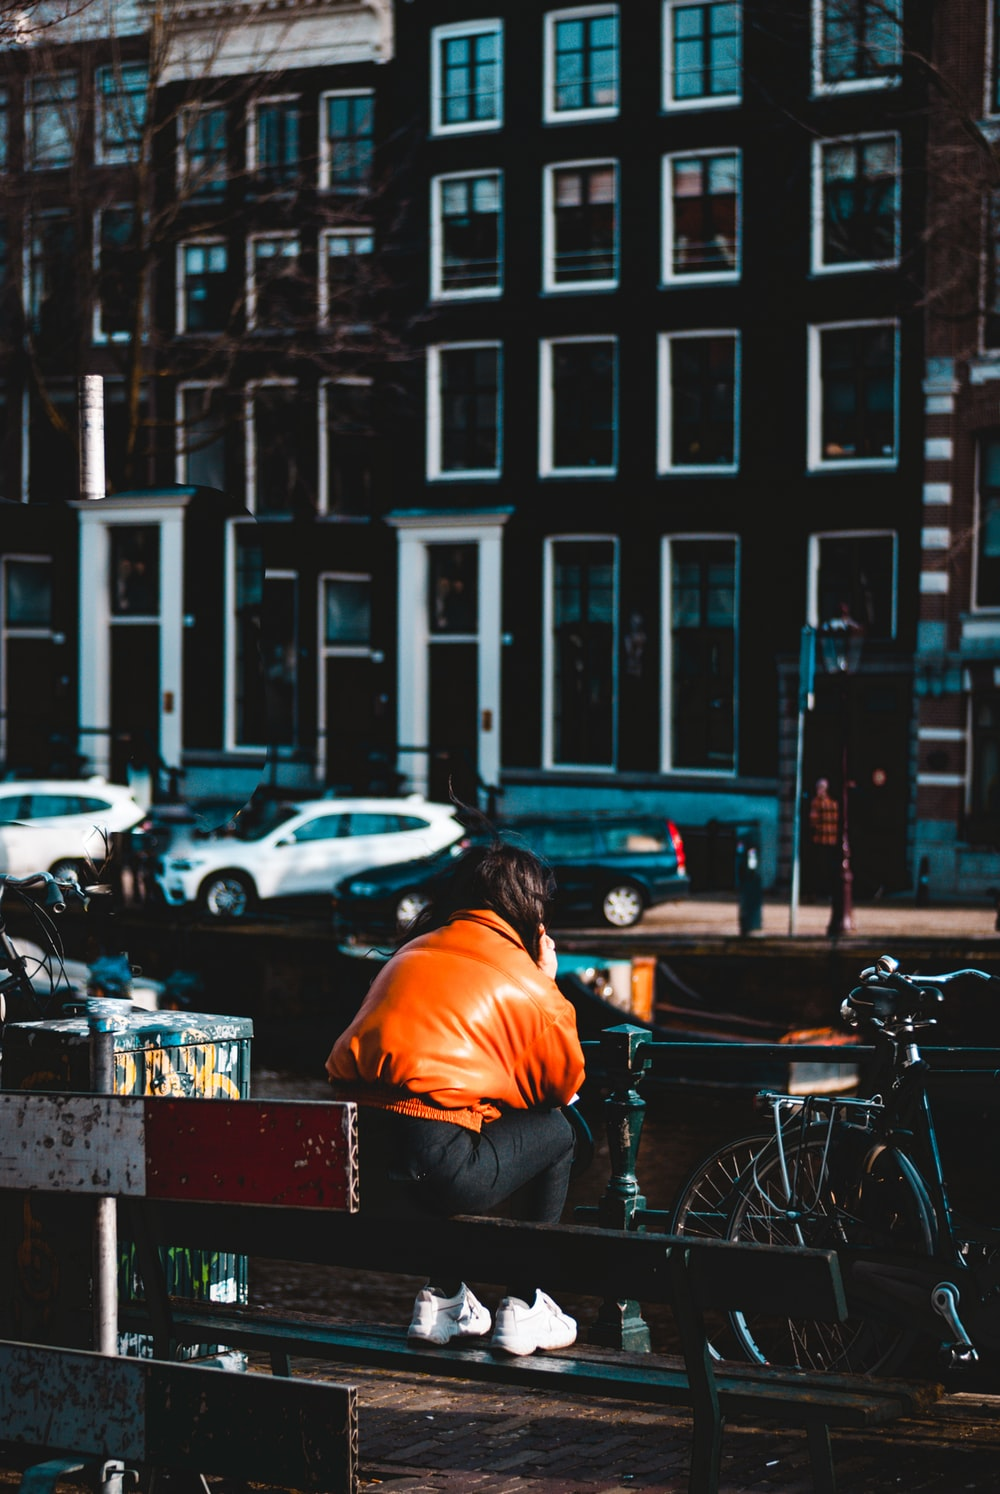 man in orange shirt sitting on bench in front of parked bicycle during daytime